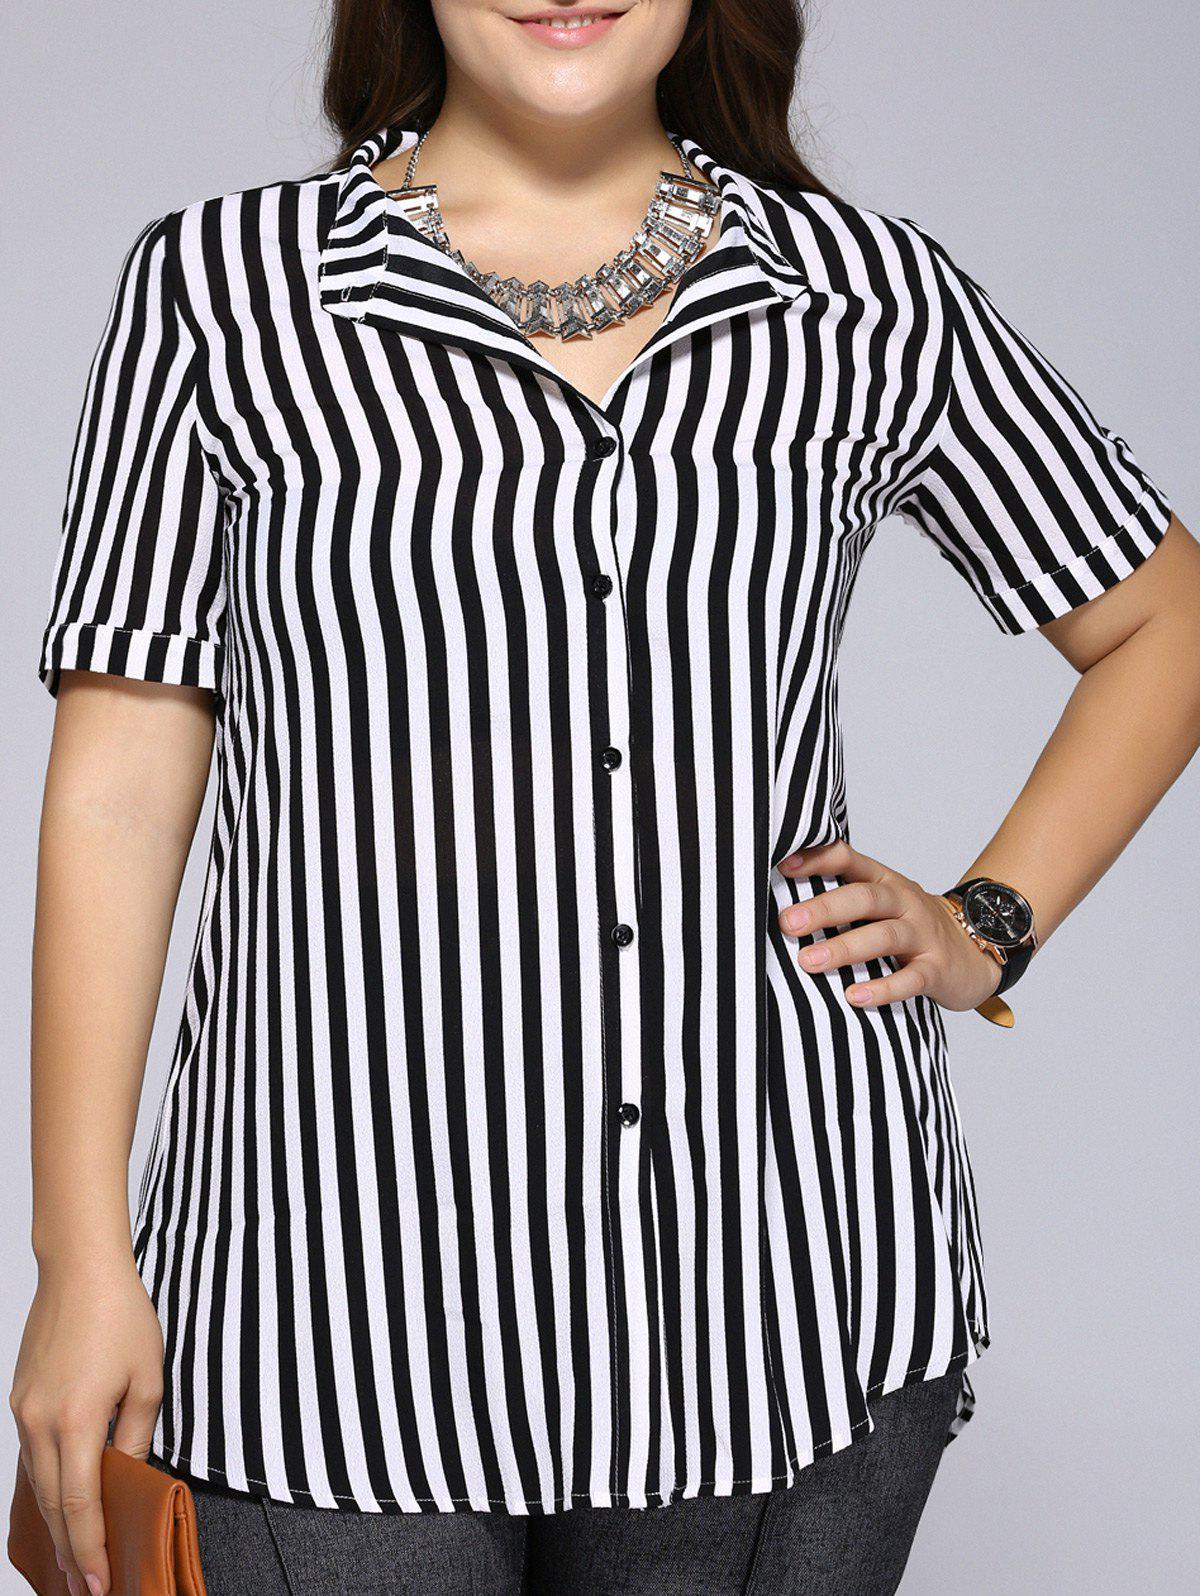 Simple Plus Size Striped Stand Collar Shirt - 4XL WHITE/BLACK